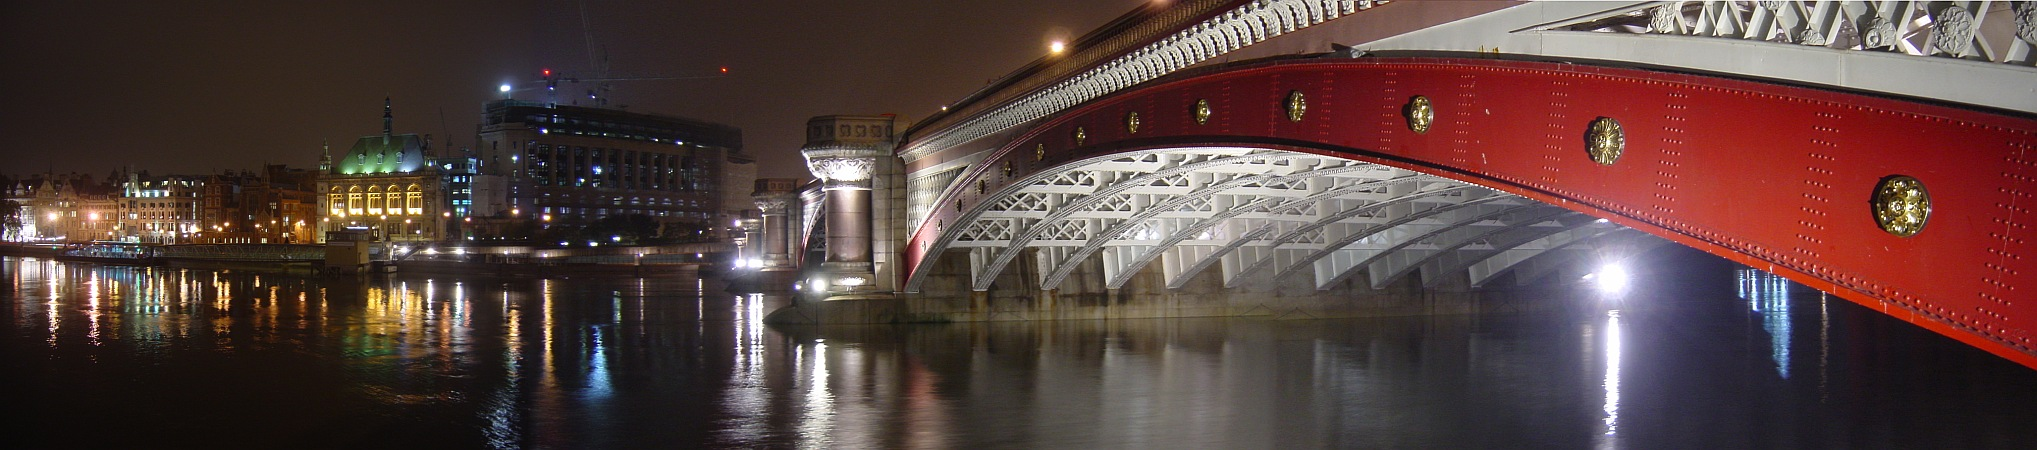 Photo - Blackfriars bridge de nuit